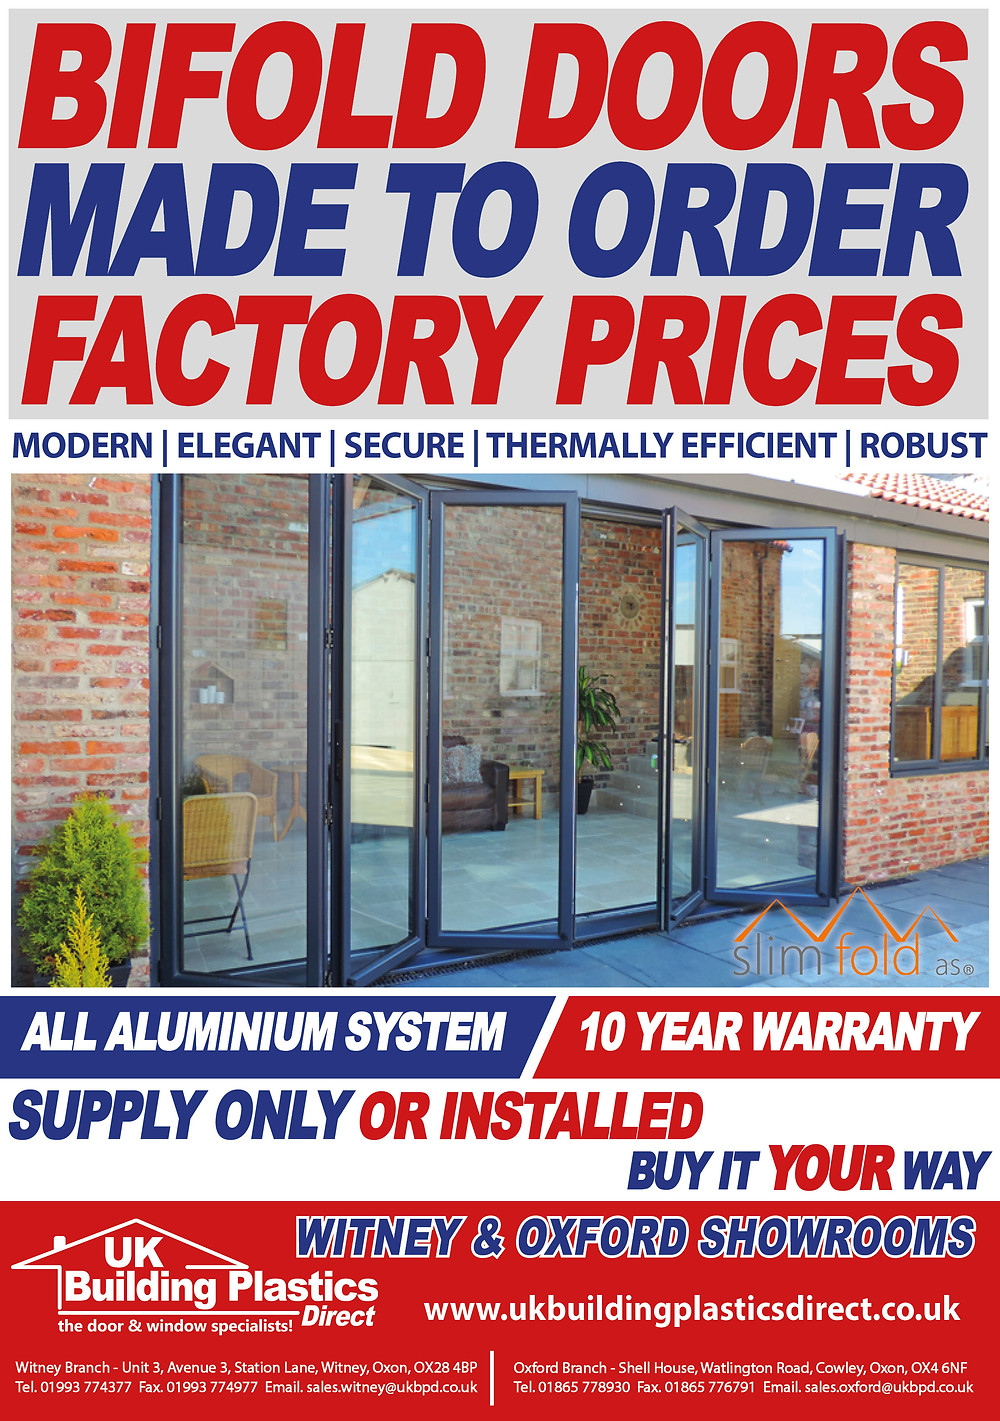 Bifold Doors - Witney - Oxford - UK Building Plastics Direct